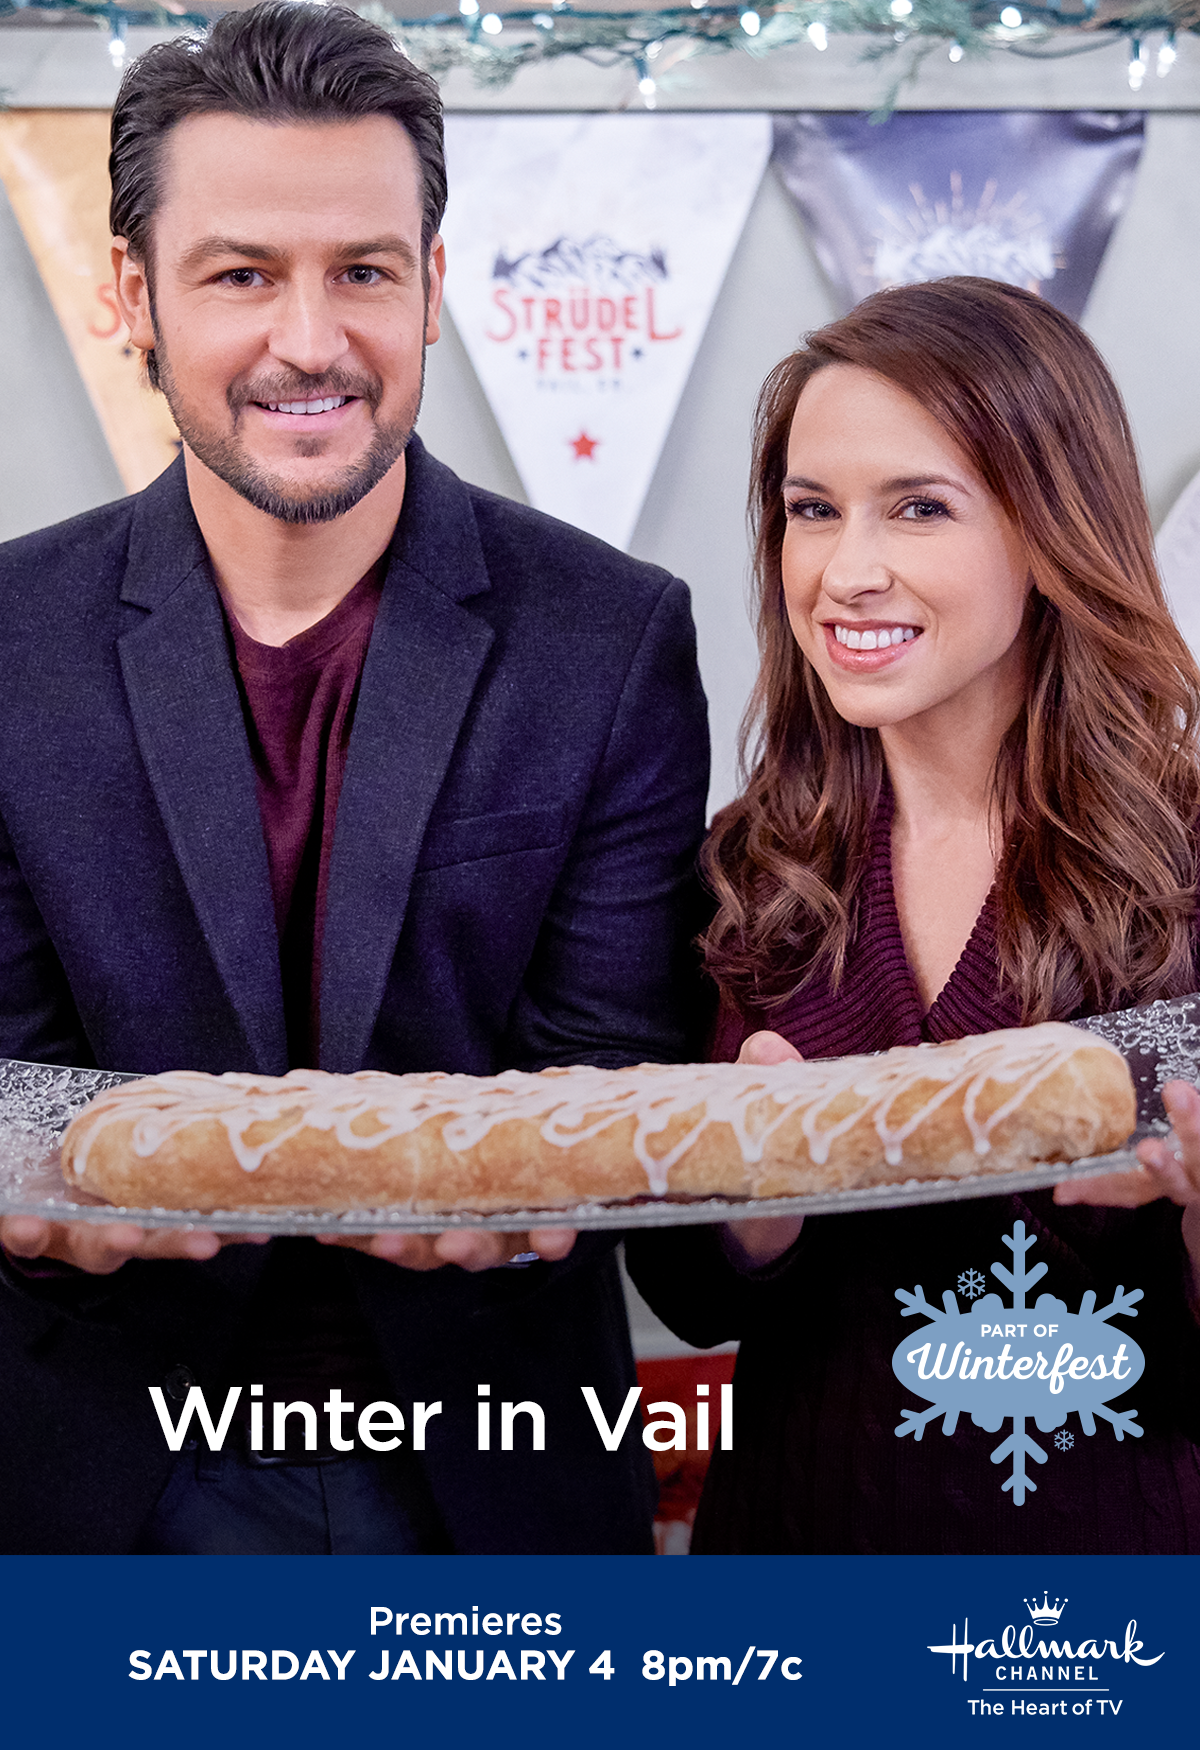 Winterfest 2020 in 2020 Winterfest, Abc family movies